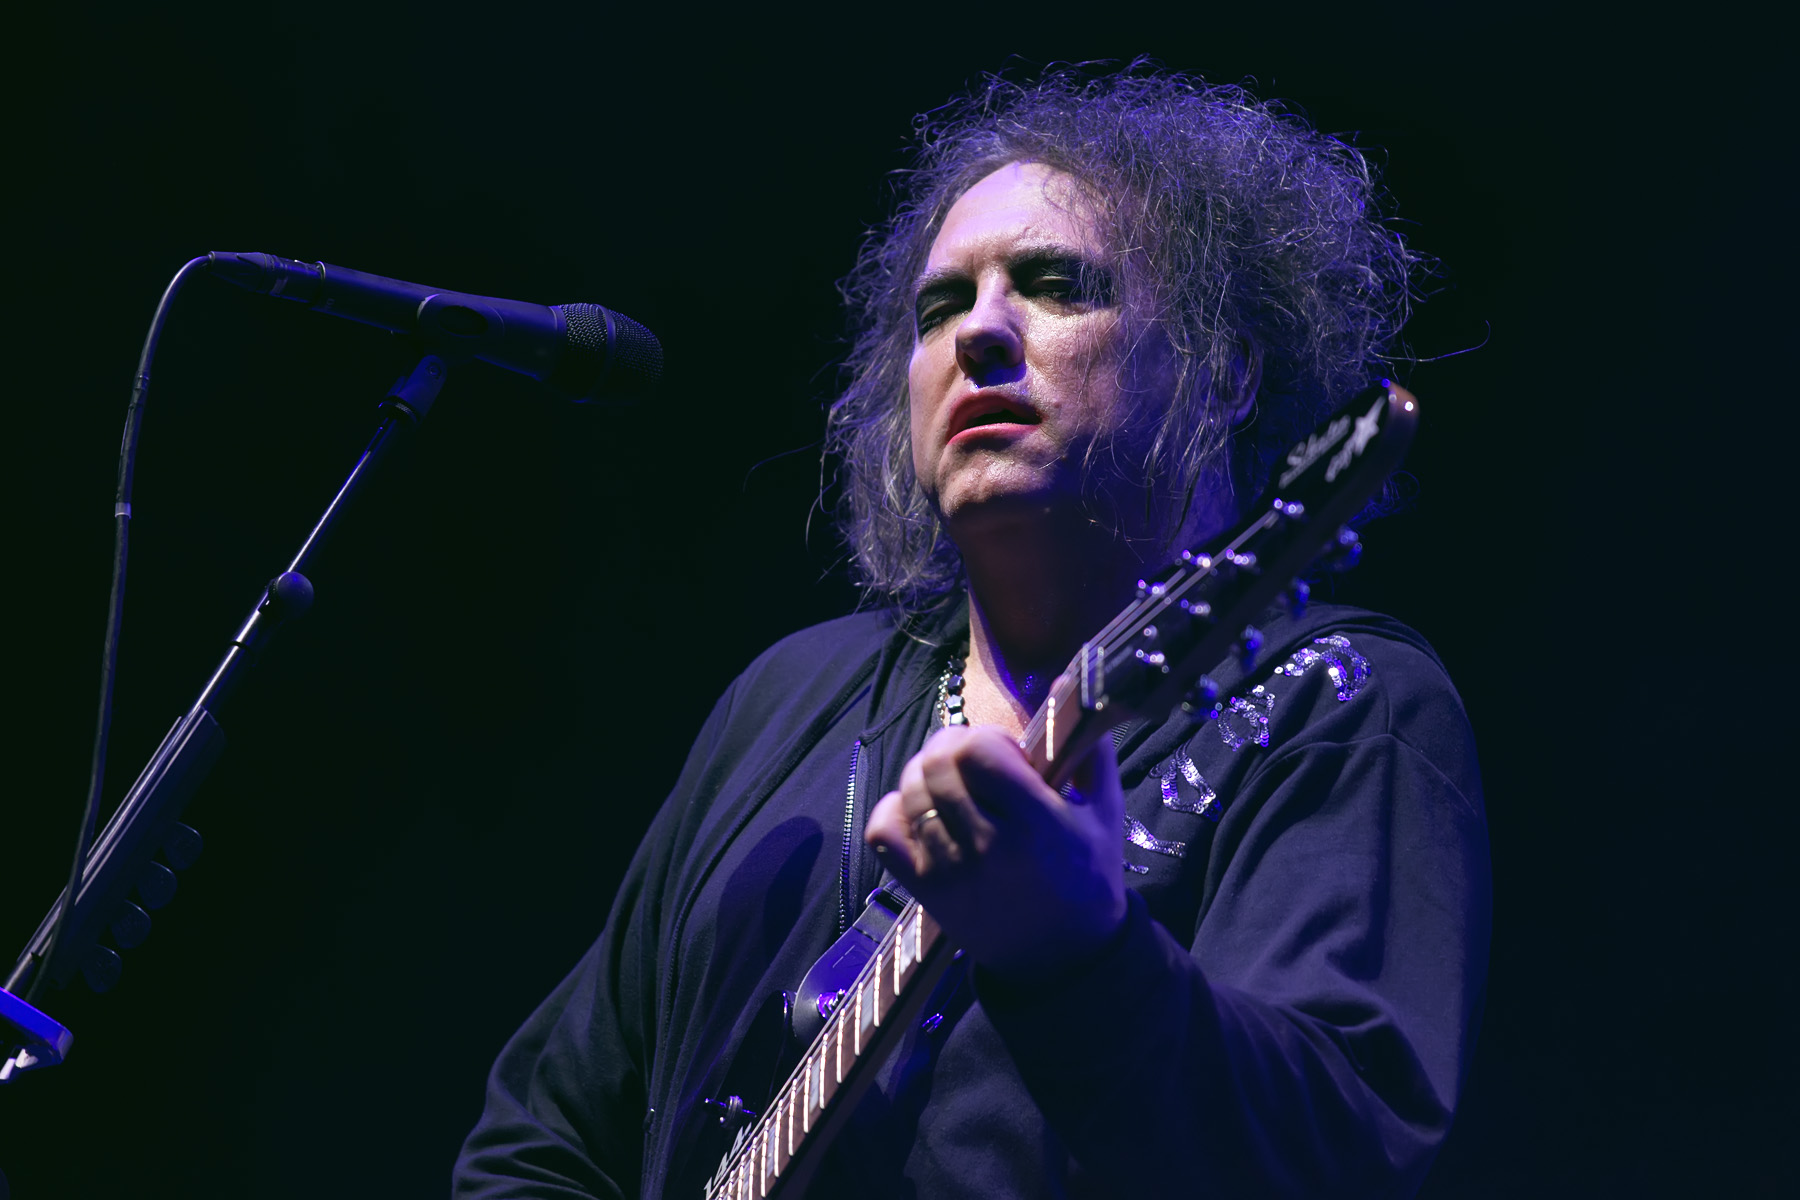 the_cure_artlasso_005.jpg